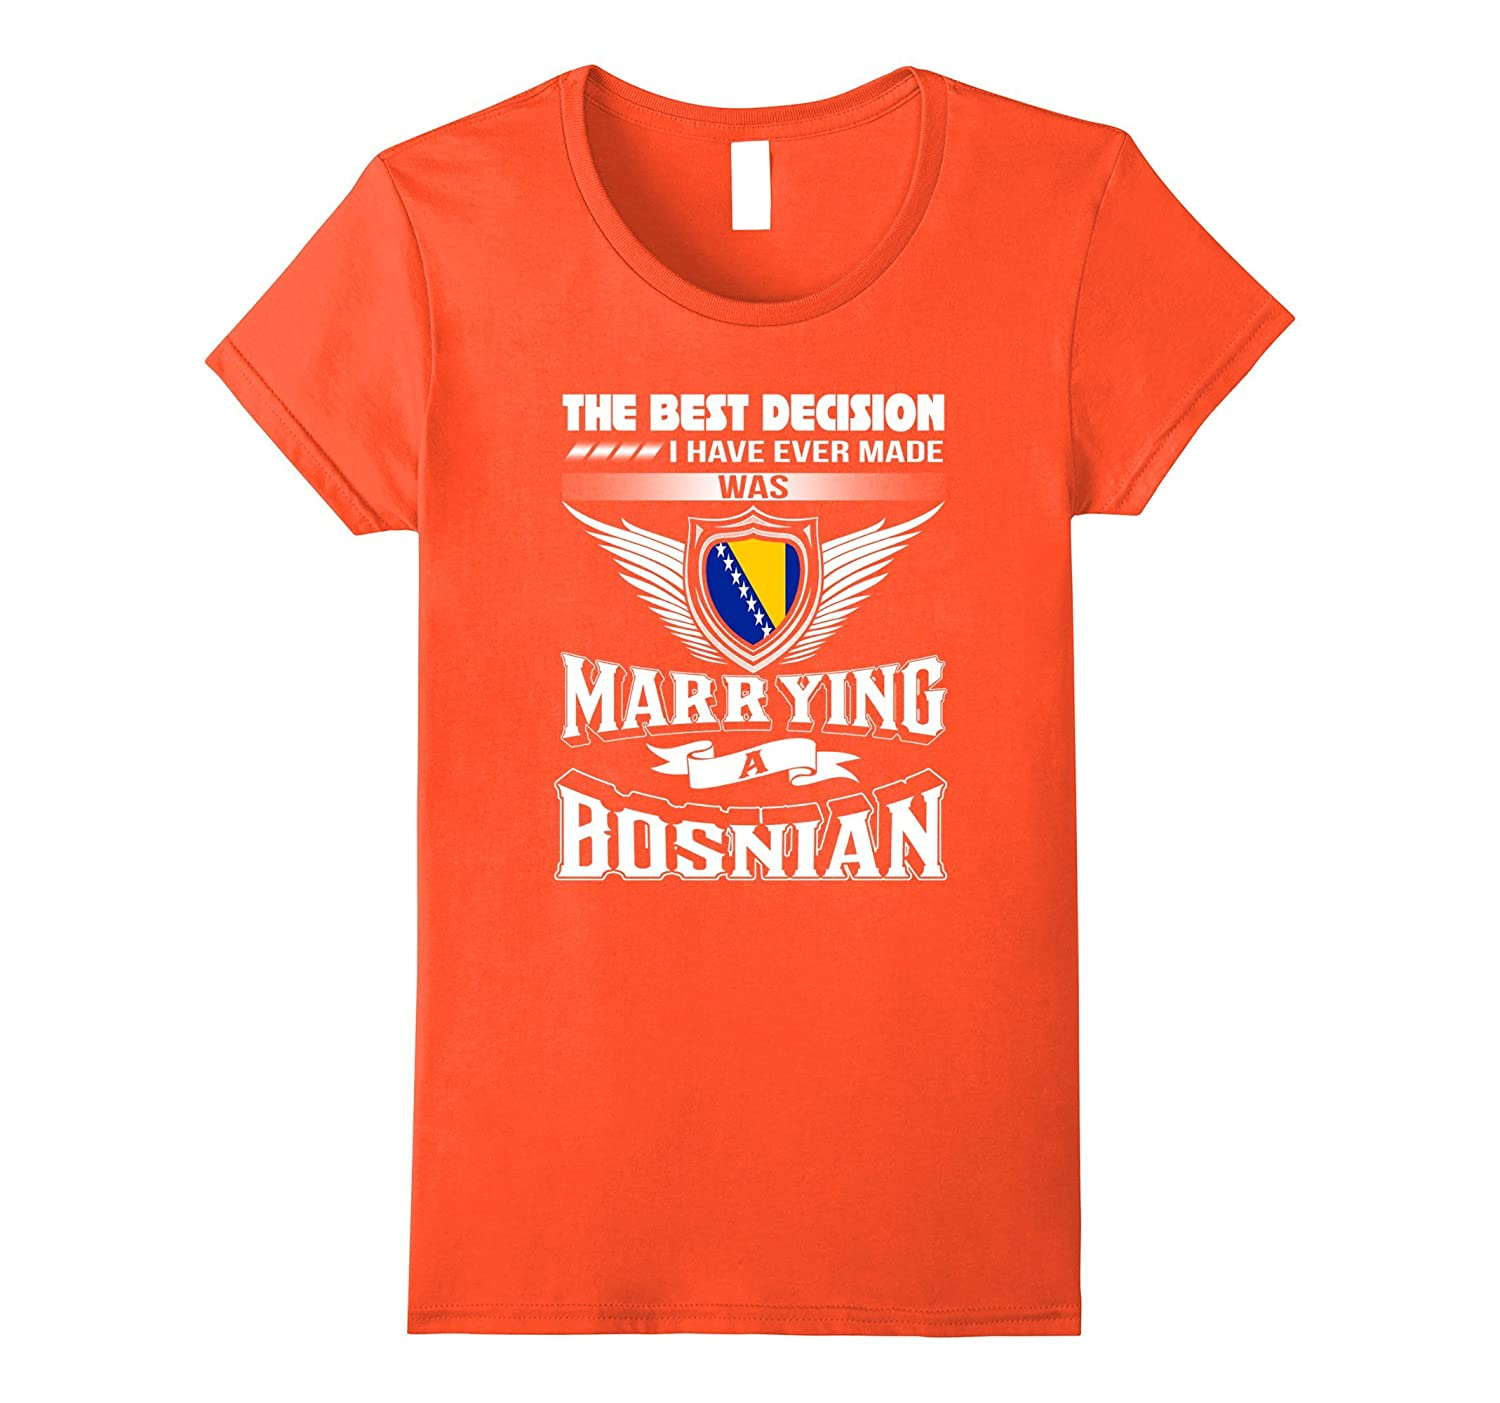 Married with Bosnia shirt